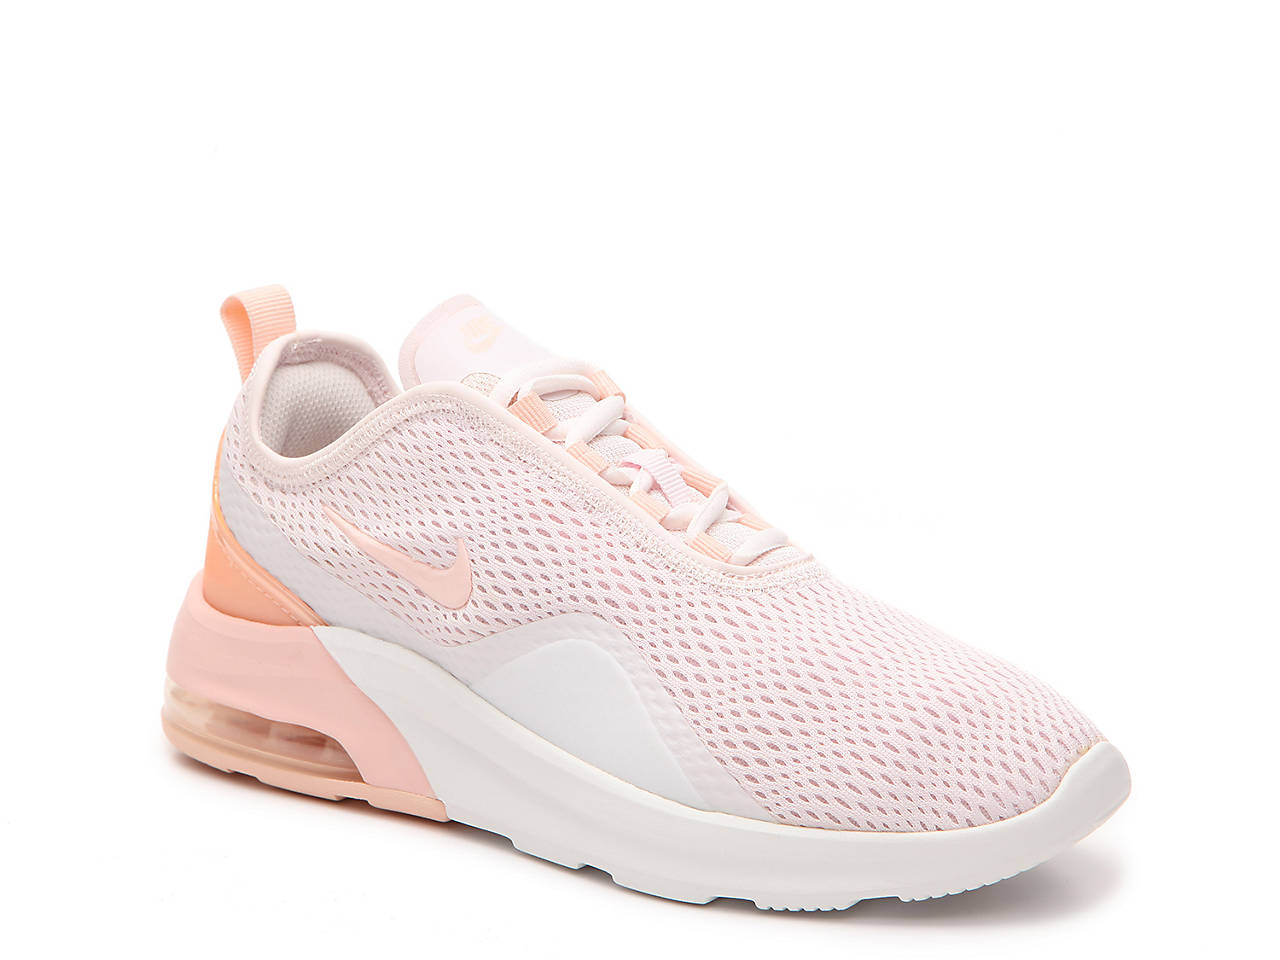 0e9a648d26 Air Max Motion 2 Sneaker - Women's